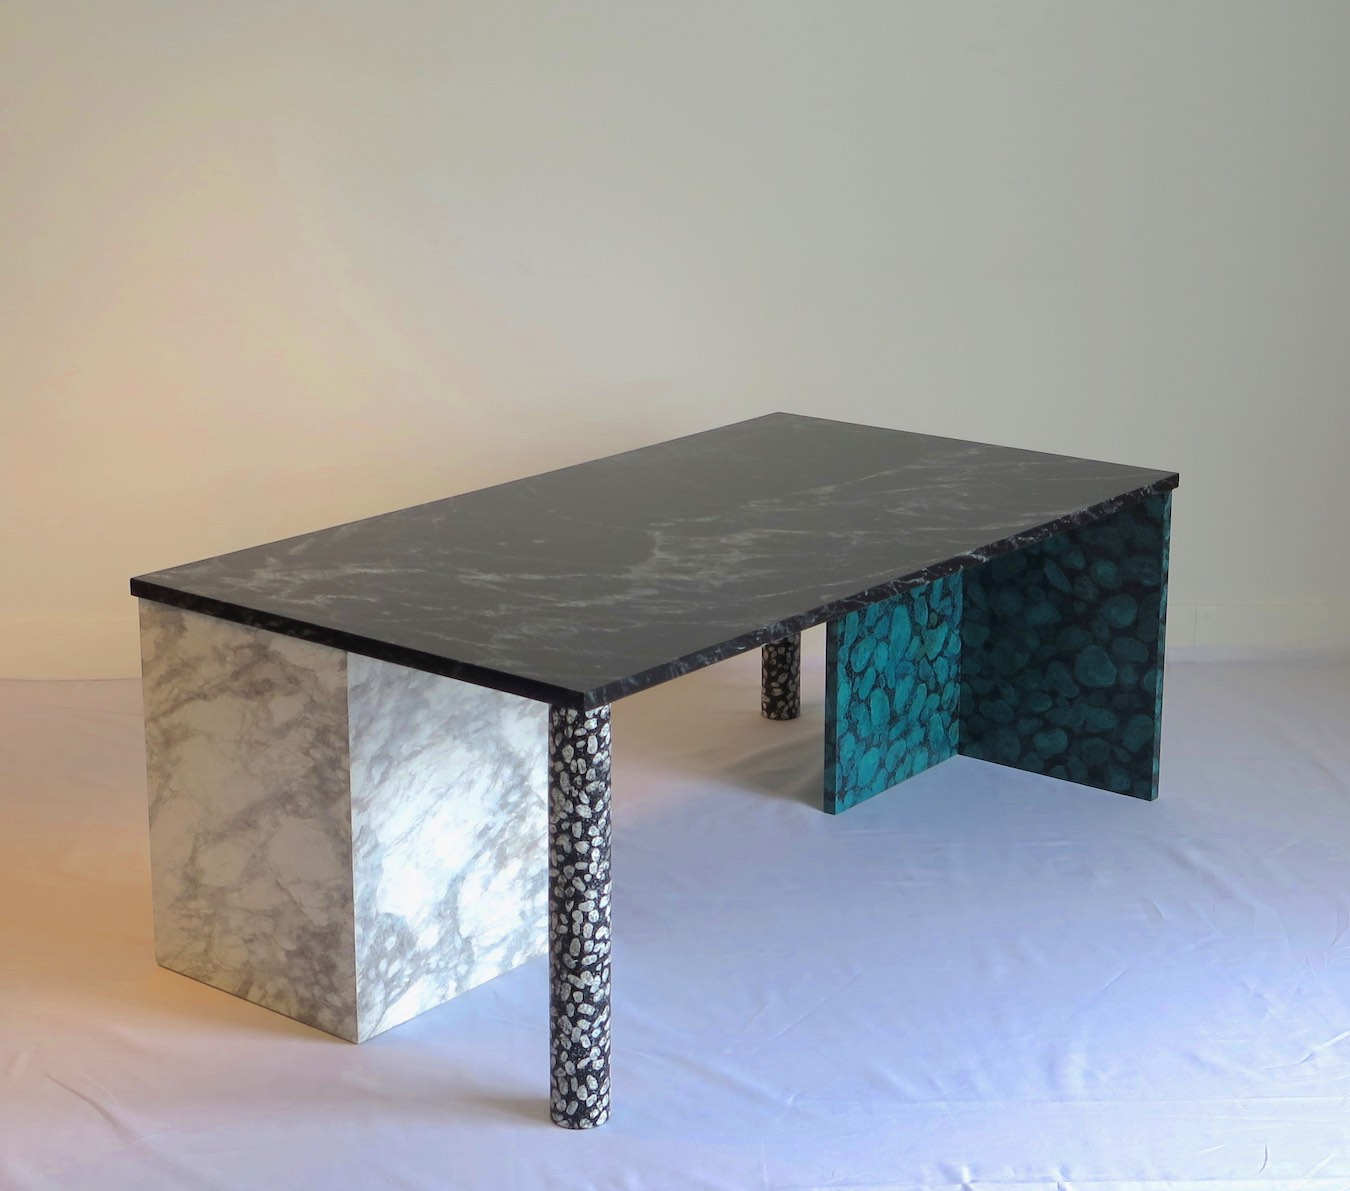 table basse customis e avec faux marbre et faux terrazzo studio julien gautier. Black Bedroom Furniture Sets. Home Design Ideas